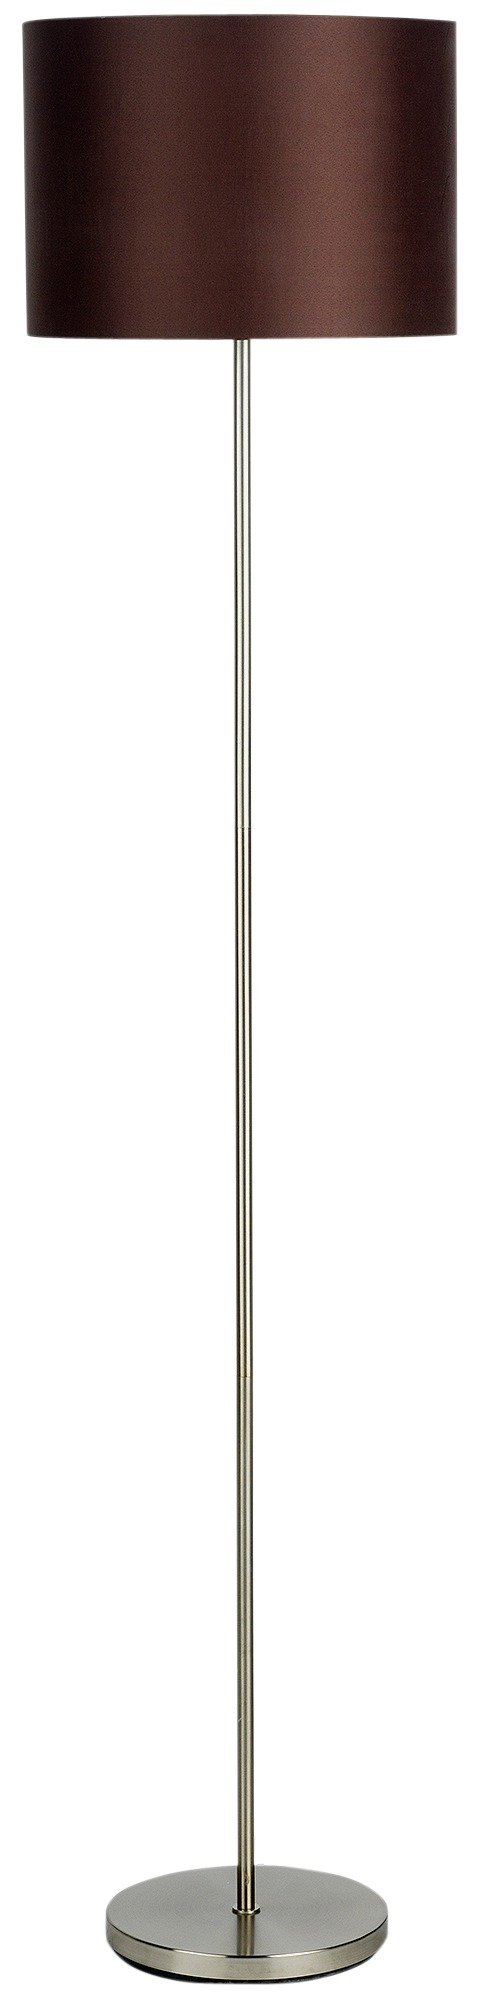 colourmatch satin stick floor lamp  chocolate.